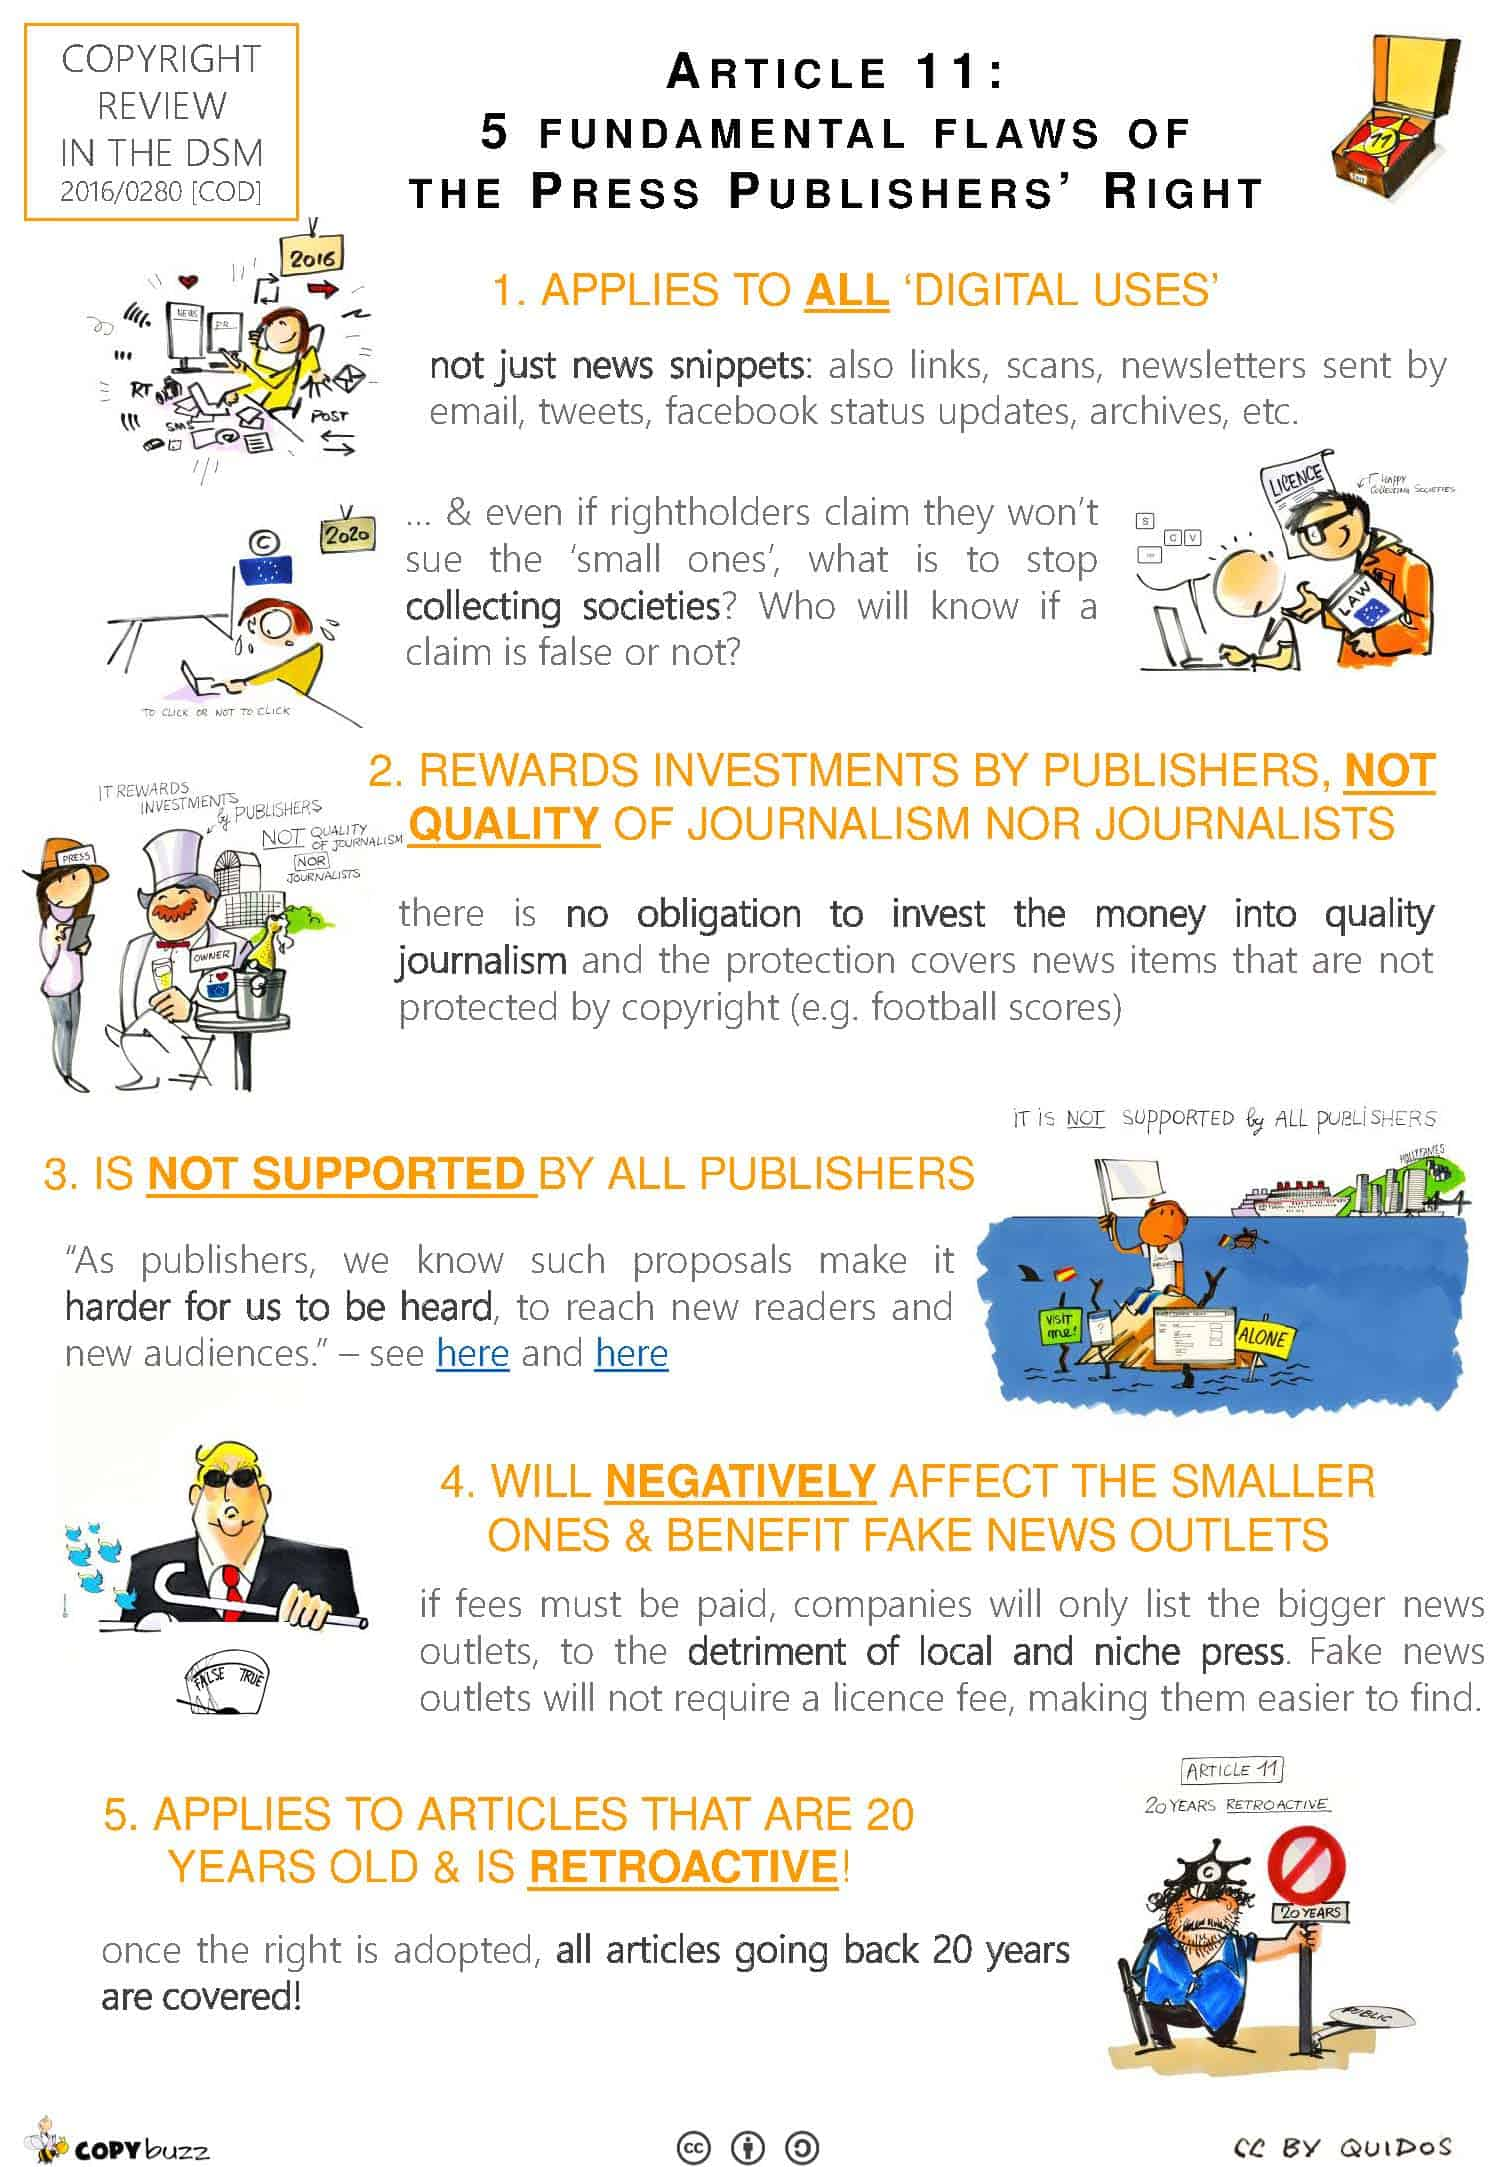 (English) The 5 fundamental flaws of the Press publisher's right